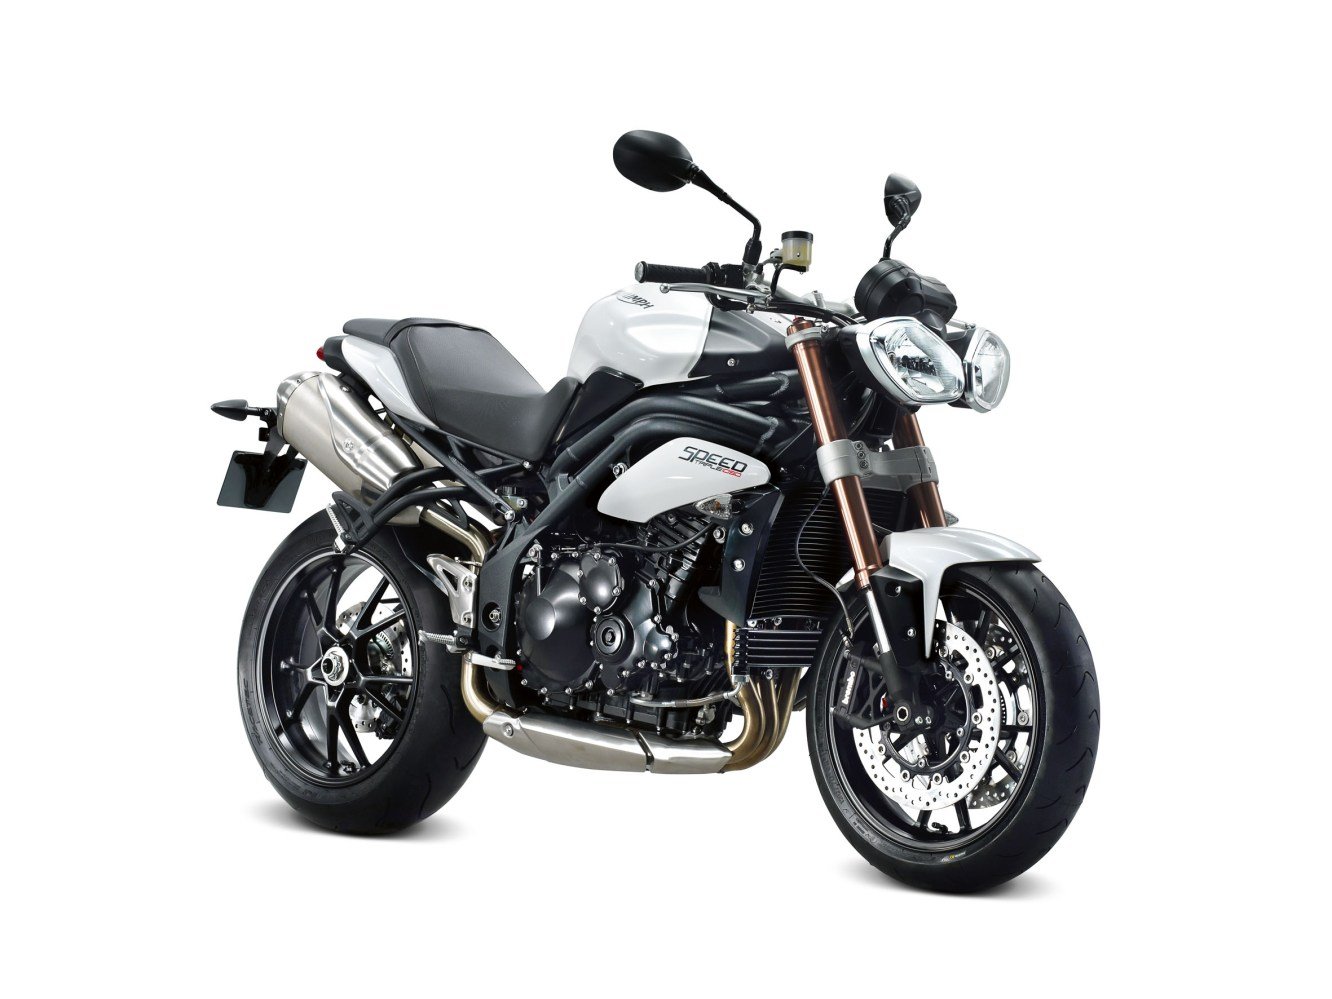 SpeedTriple_White_F3Q